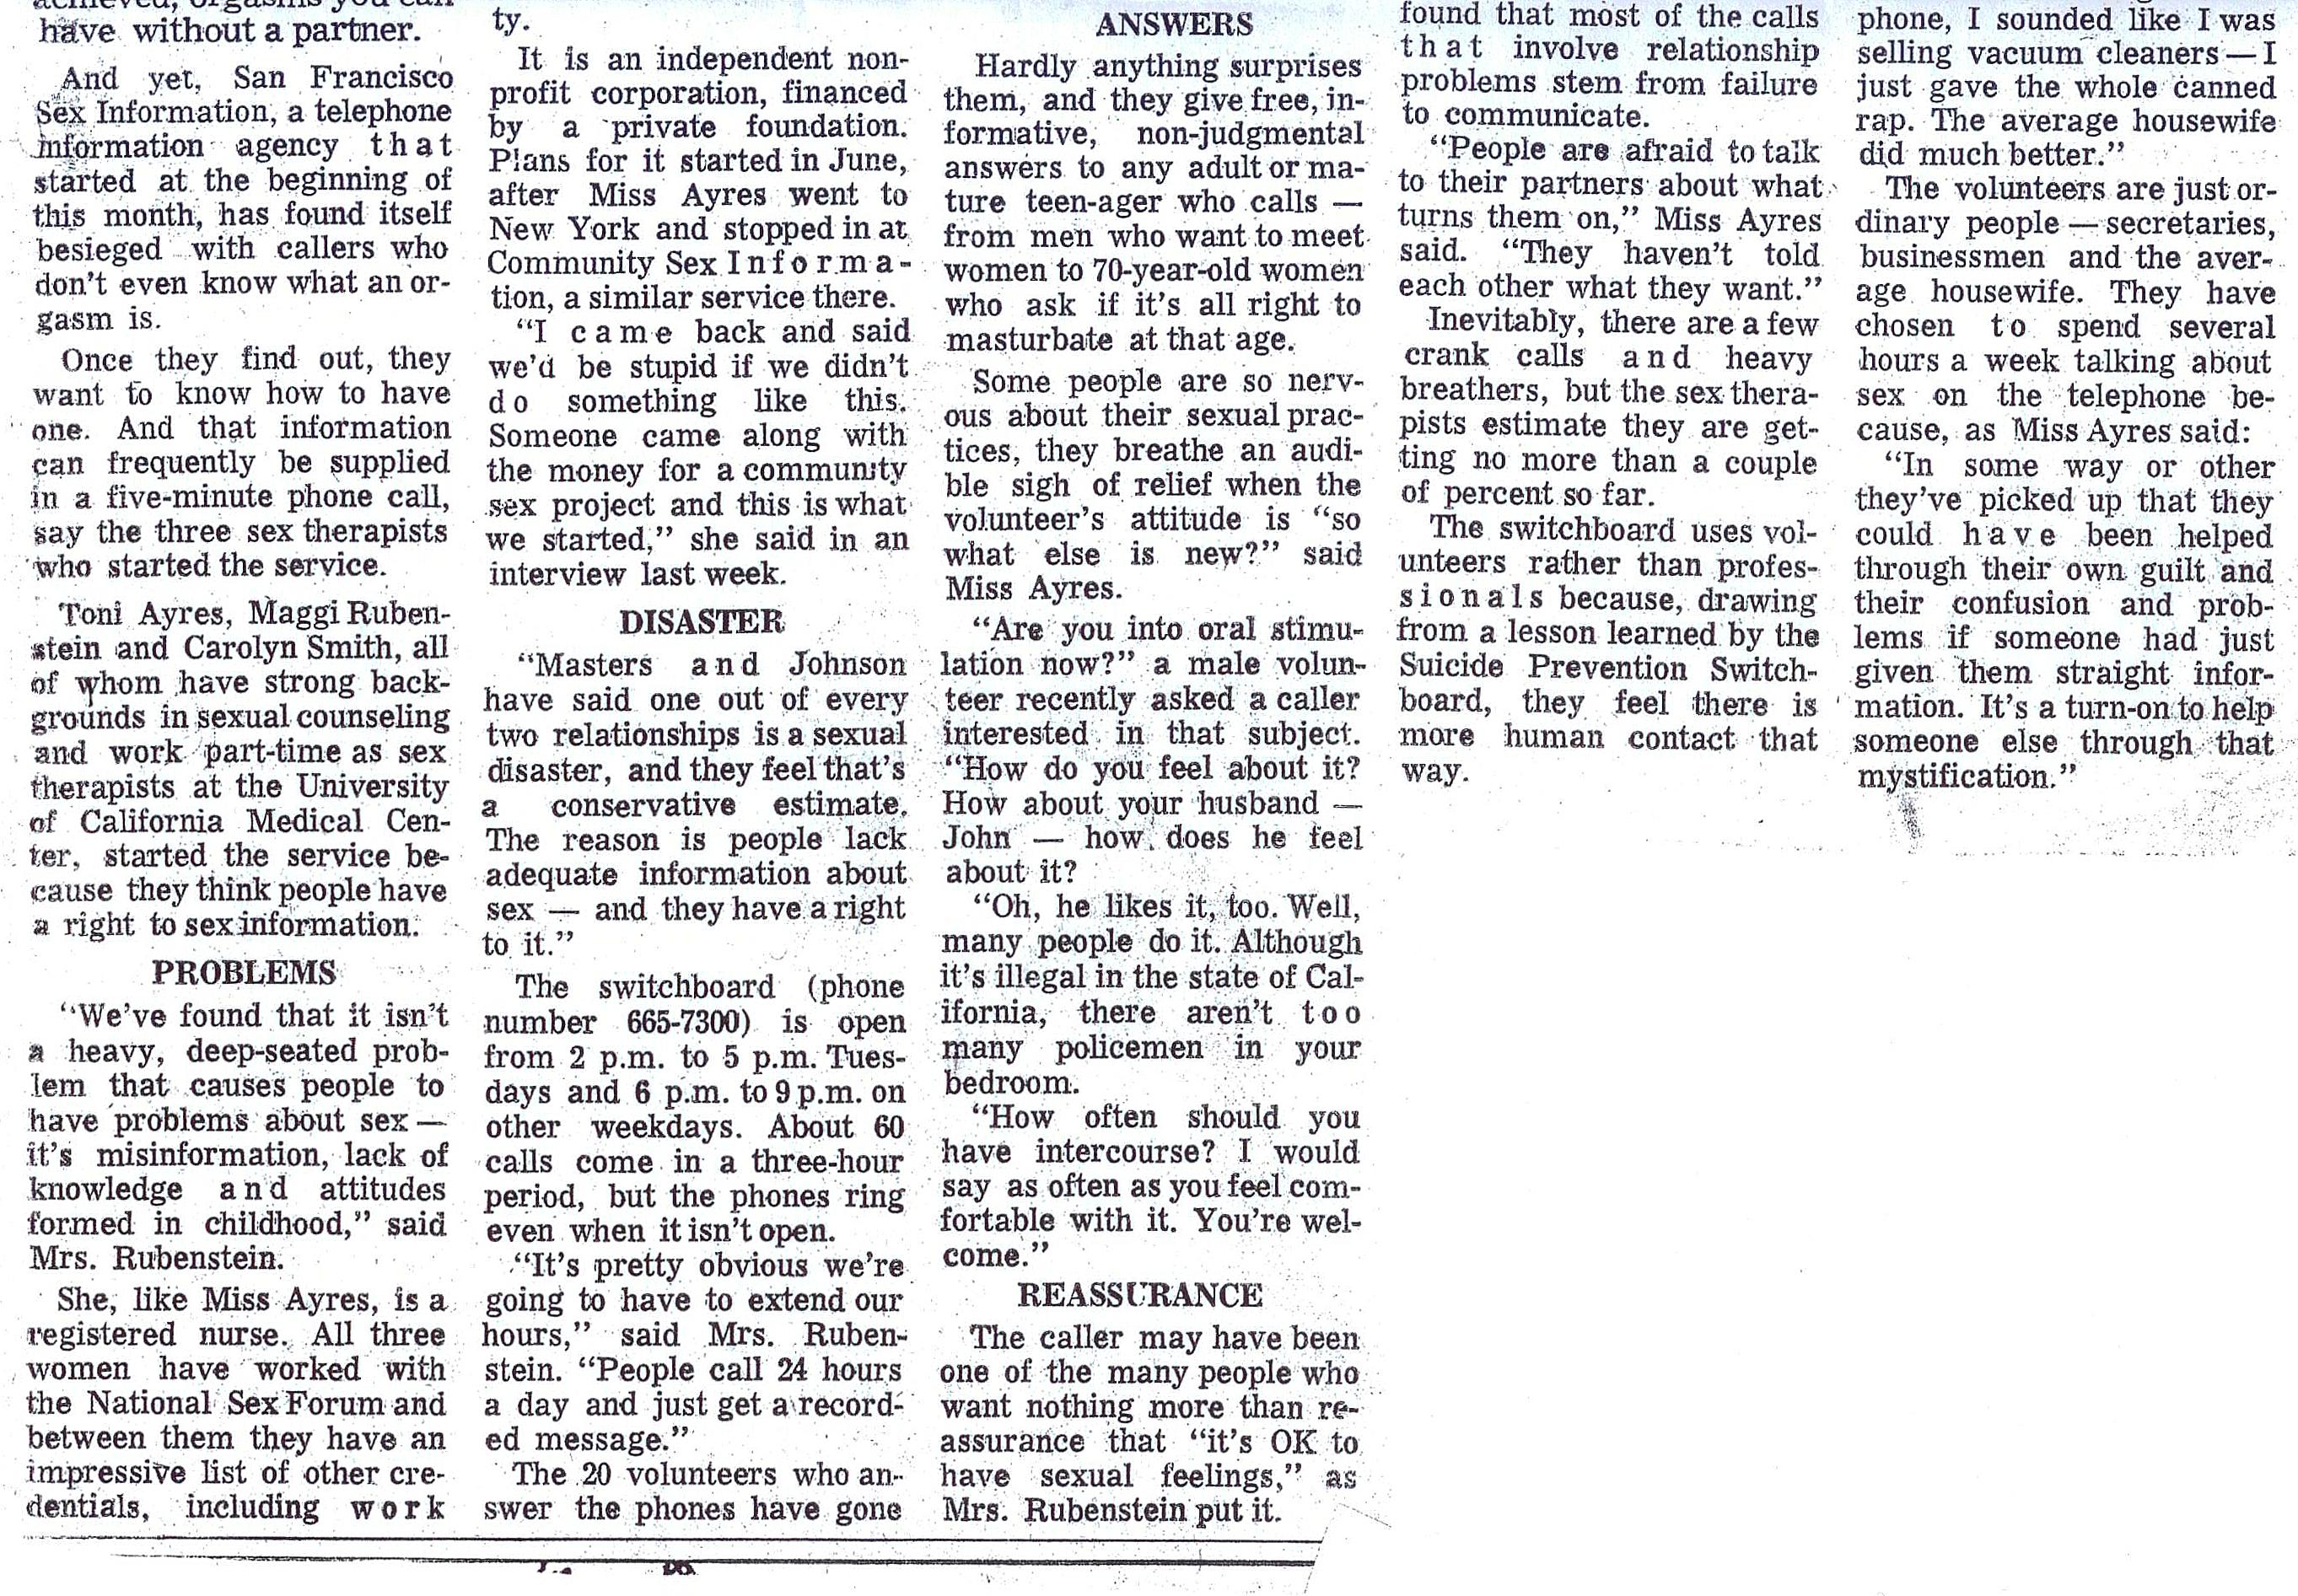 1972 SF Chronicle Article on SFSI's Founding